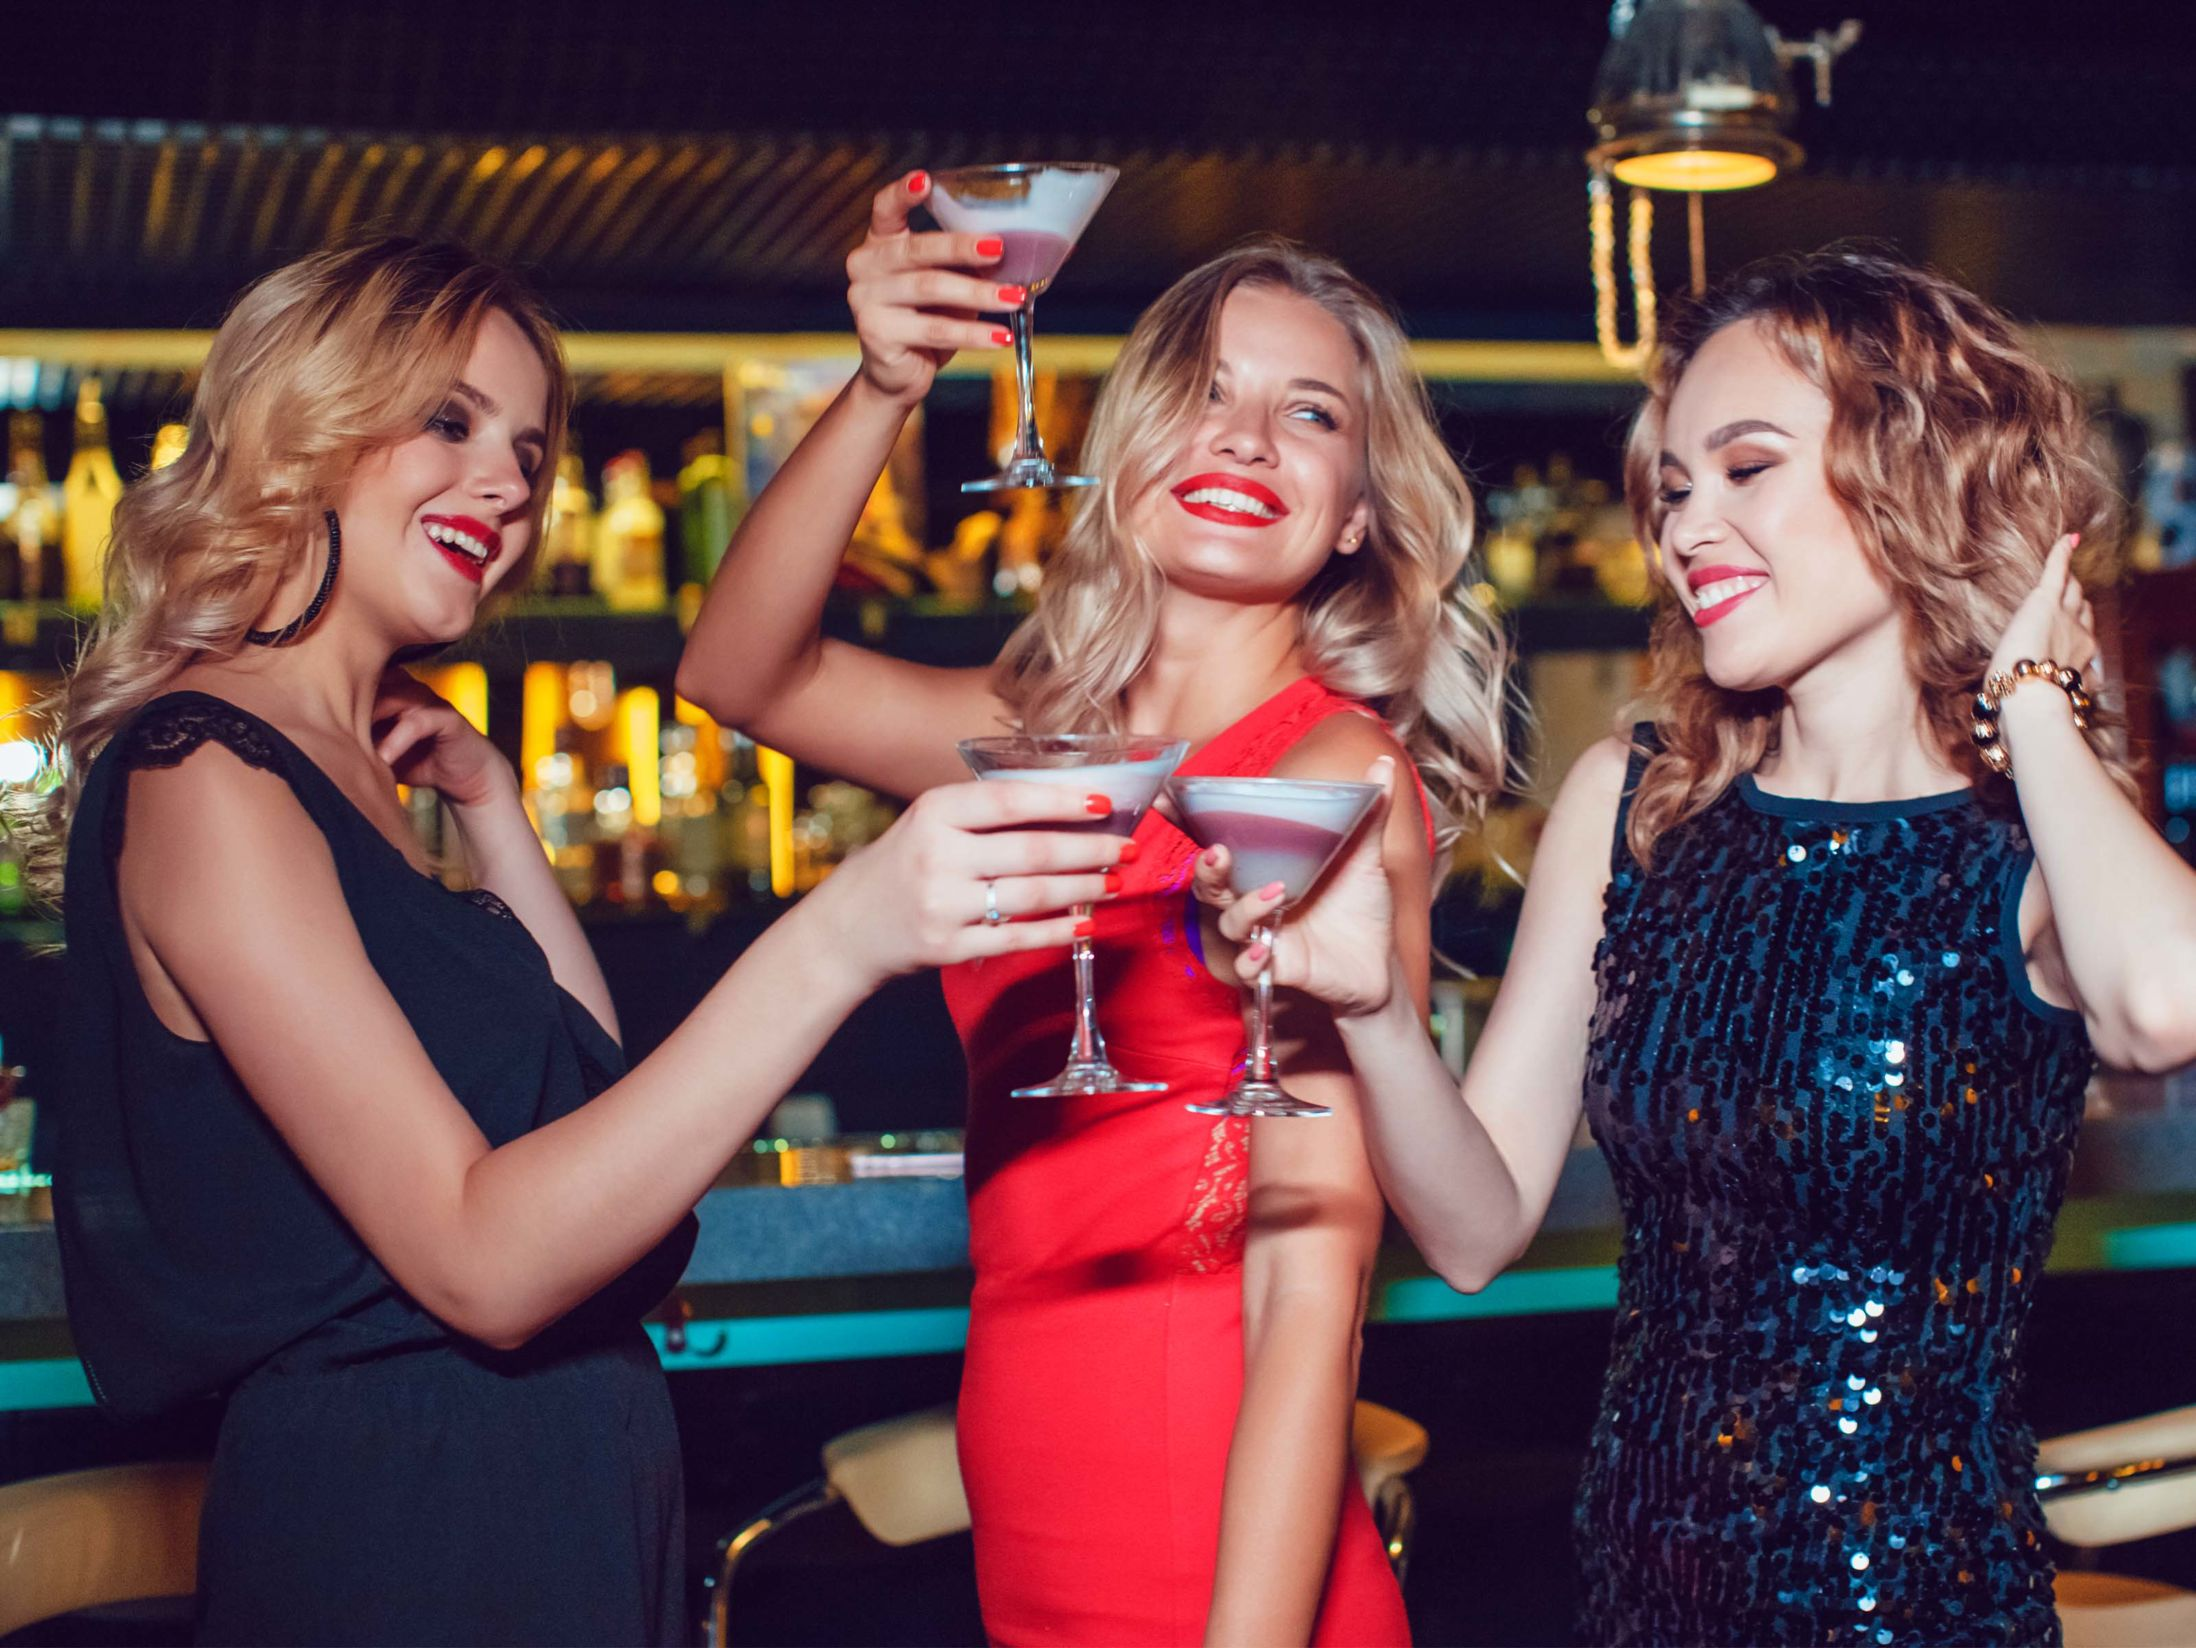 Tips for Getting the Most Out of Your Warsaw Hen Party